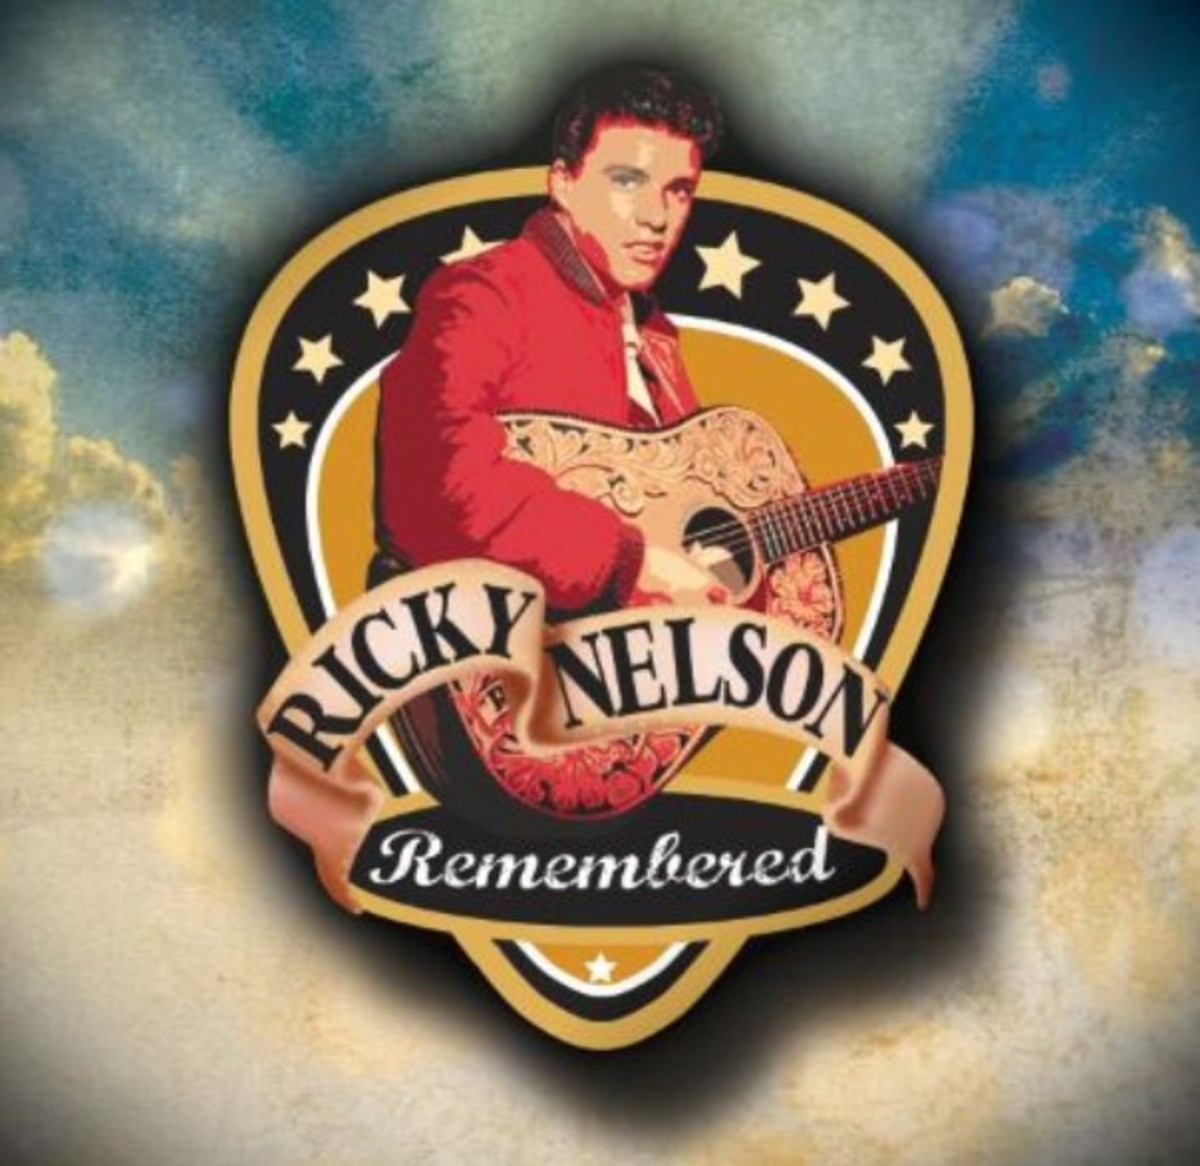 Nelson remembered